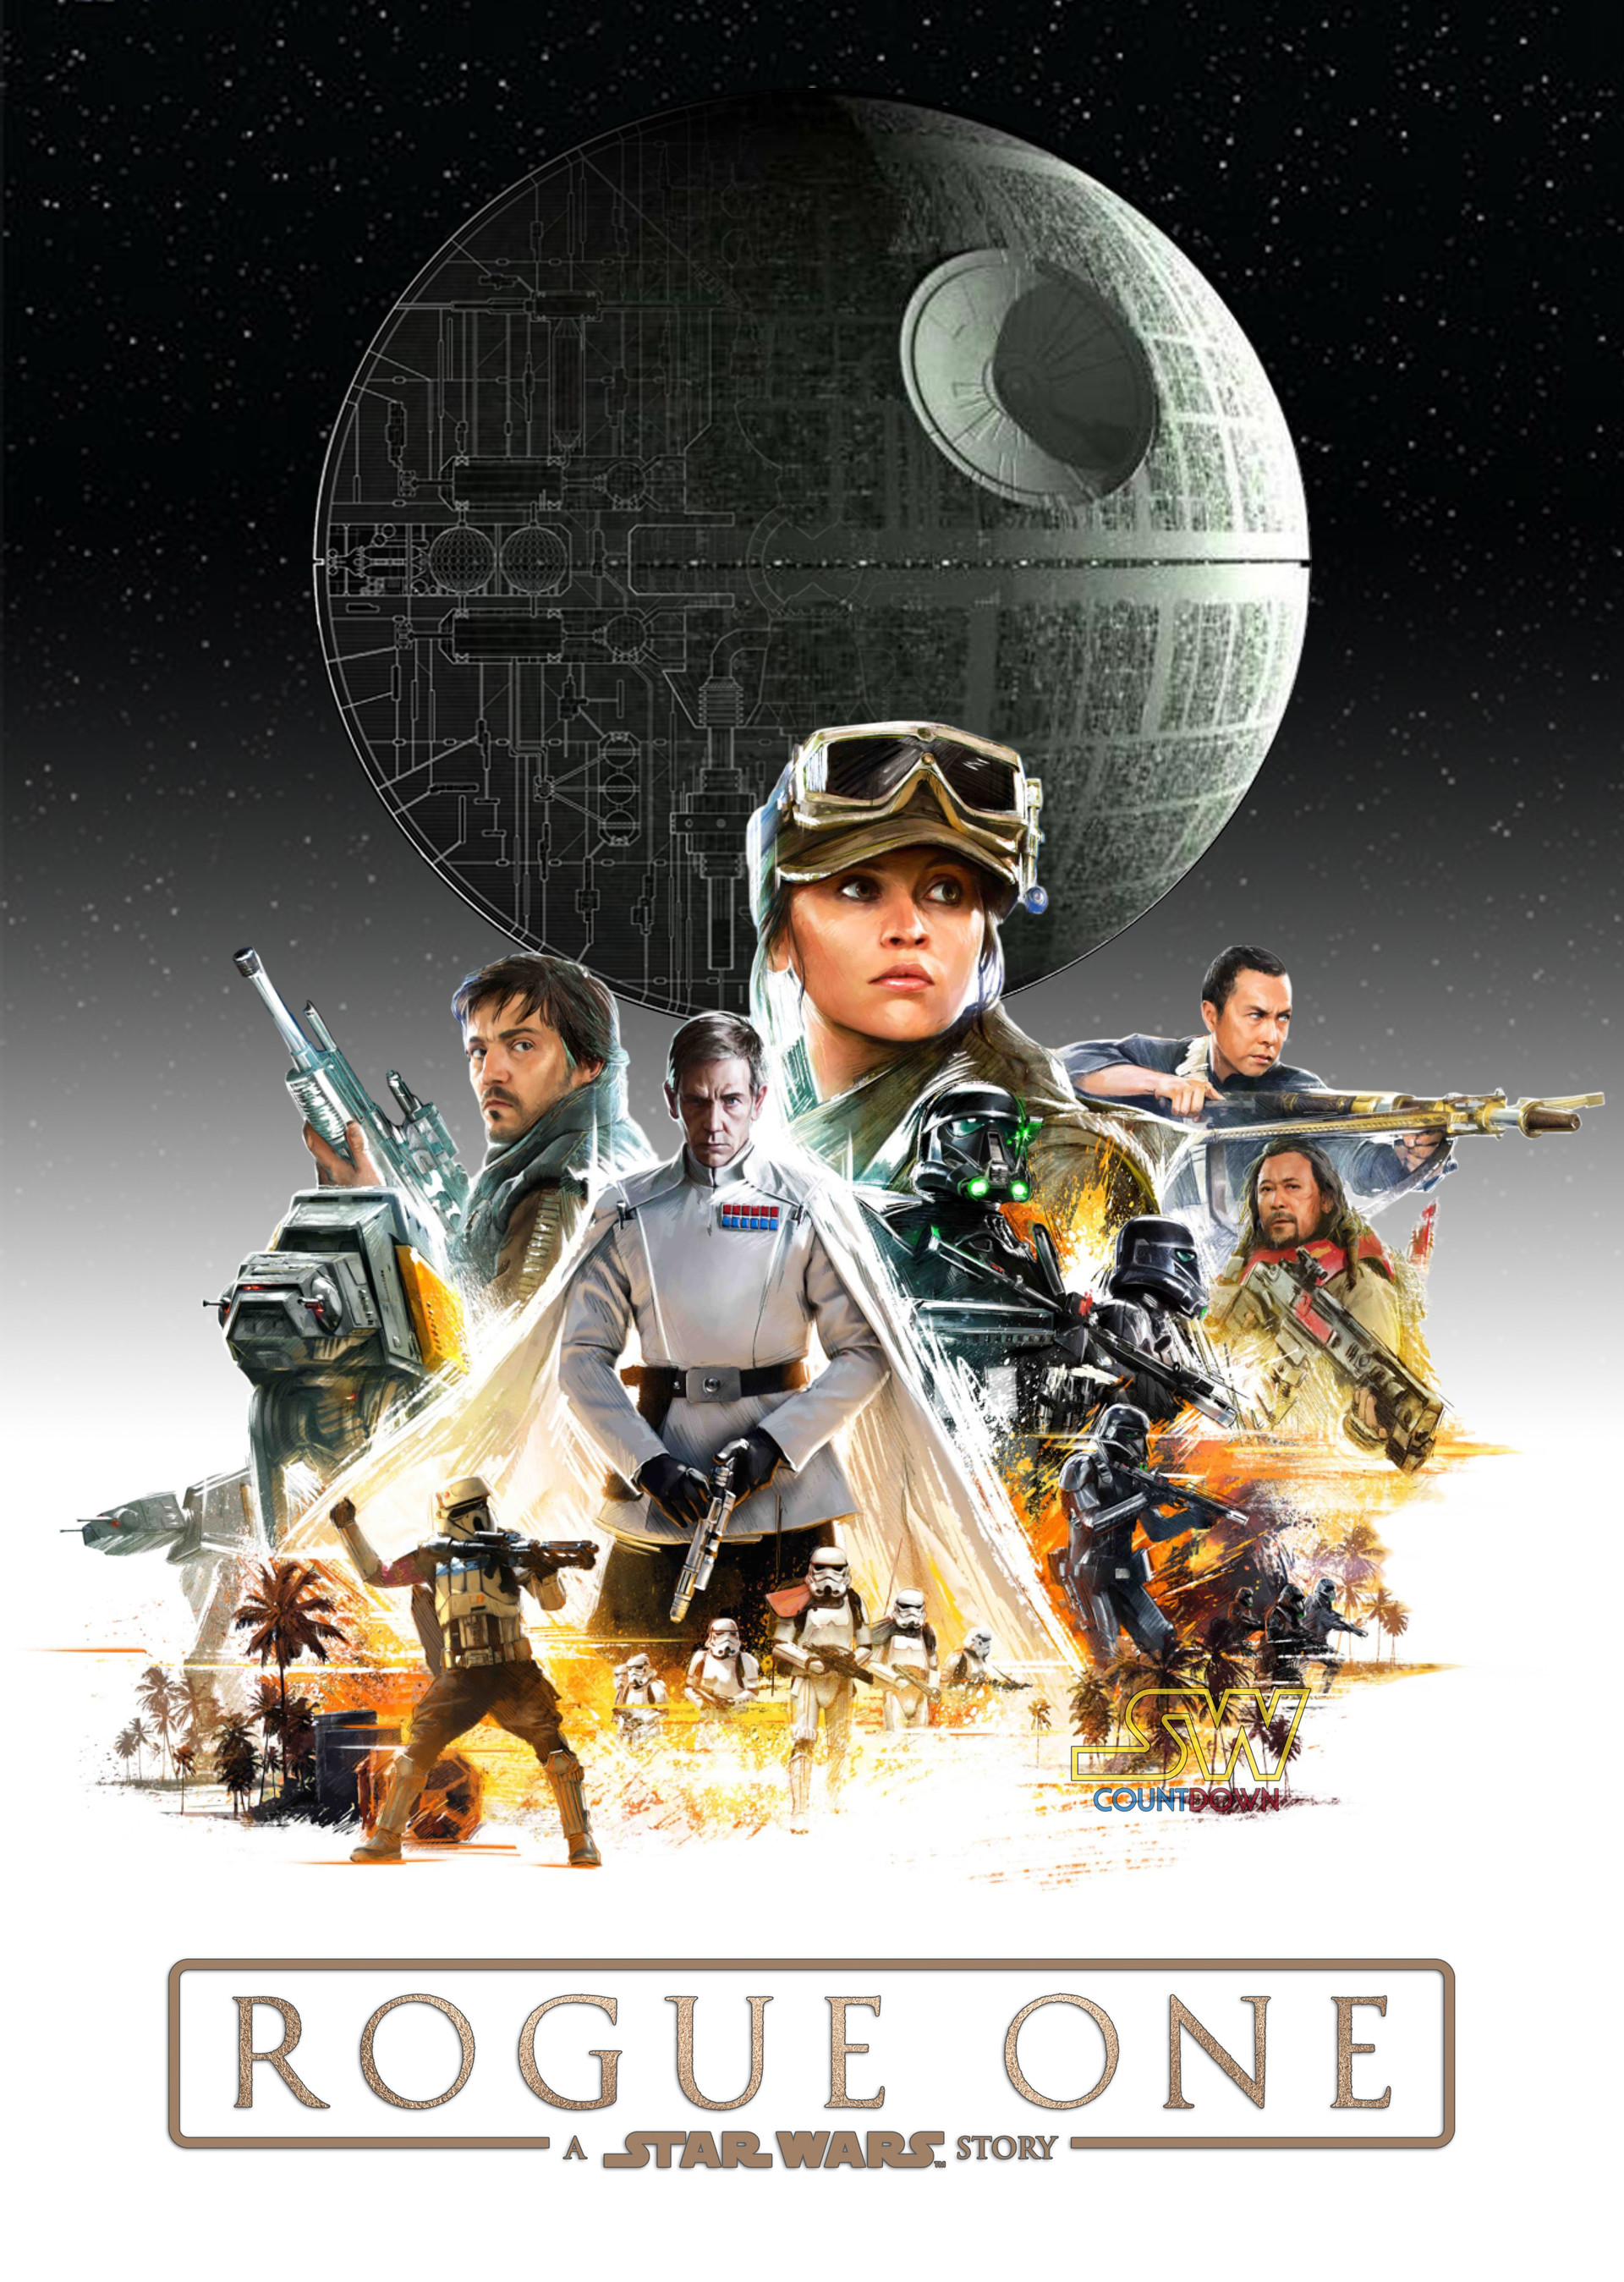 tim-sexton-rogue-one-poster-sw-countdown.jpg